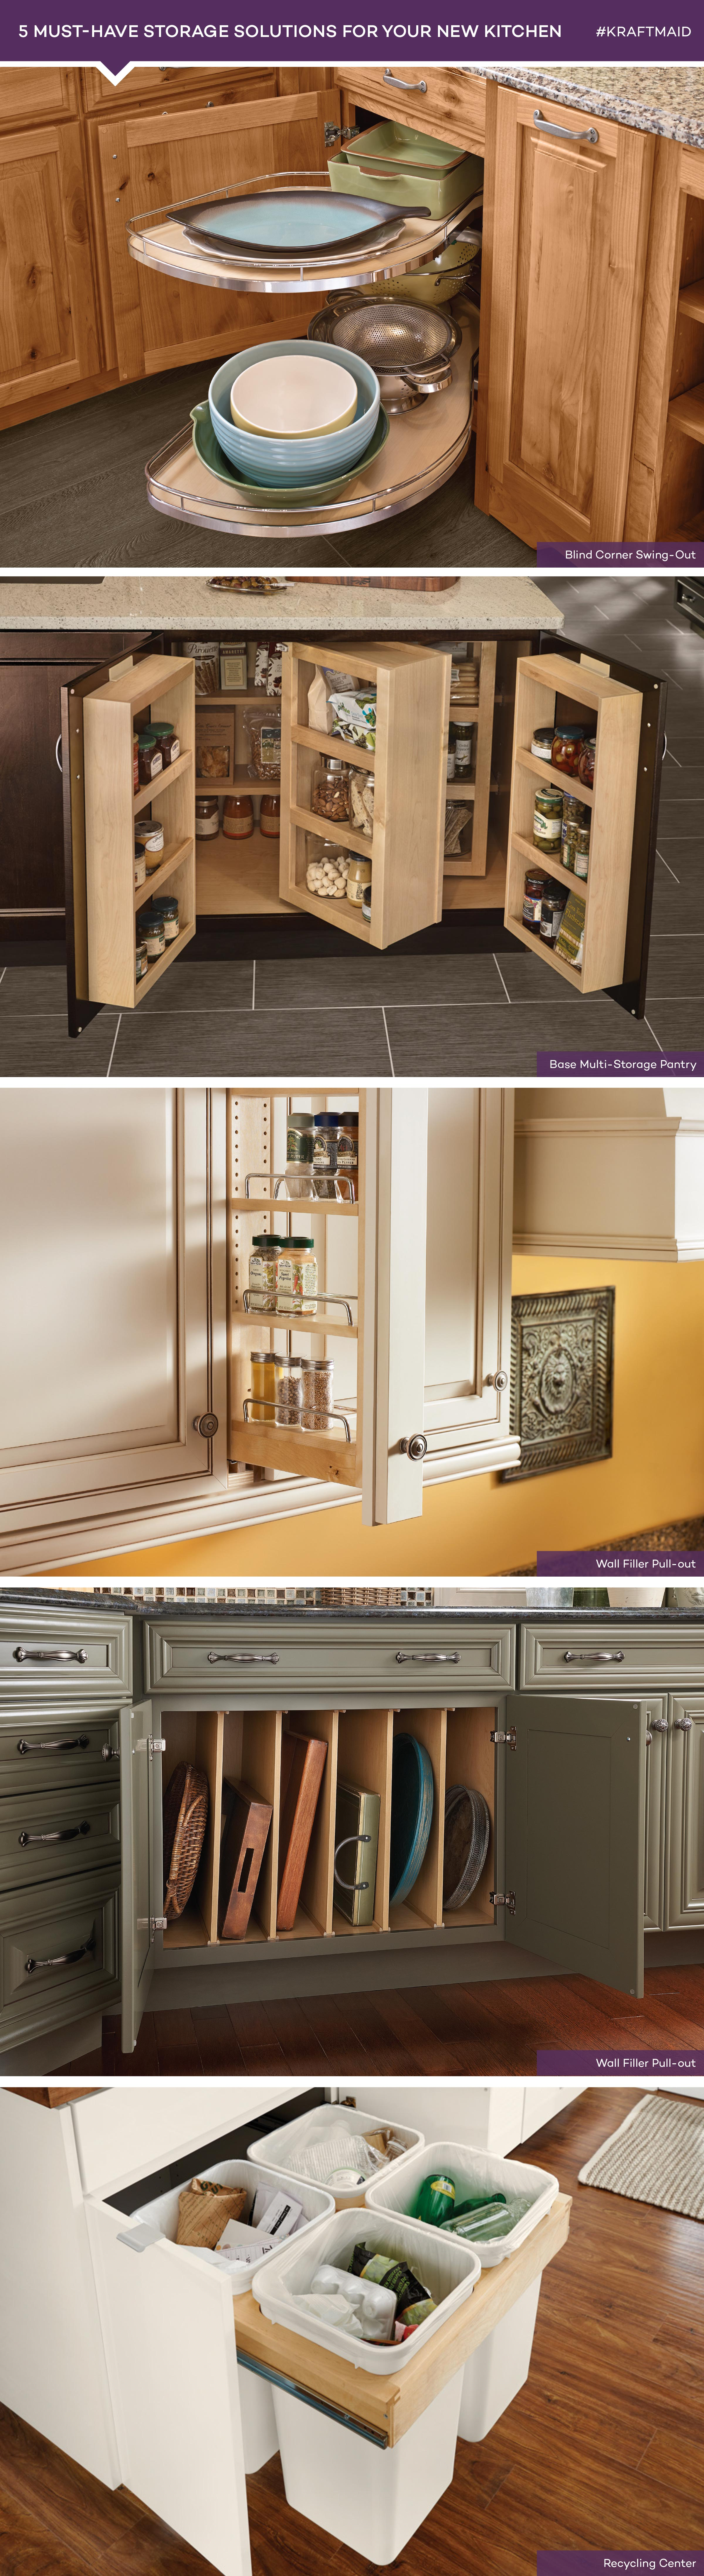 5 must have storage solutions for your new kitchen kitchen cabinet accessories kitchen on kitchen organization cabinet id=37023